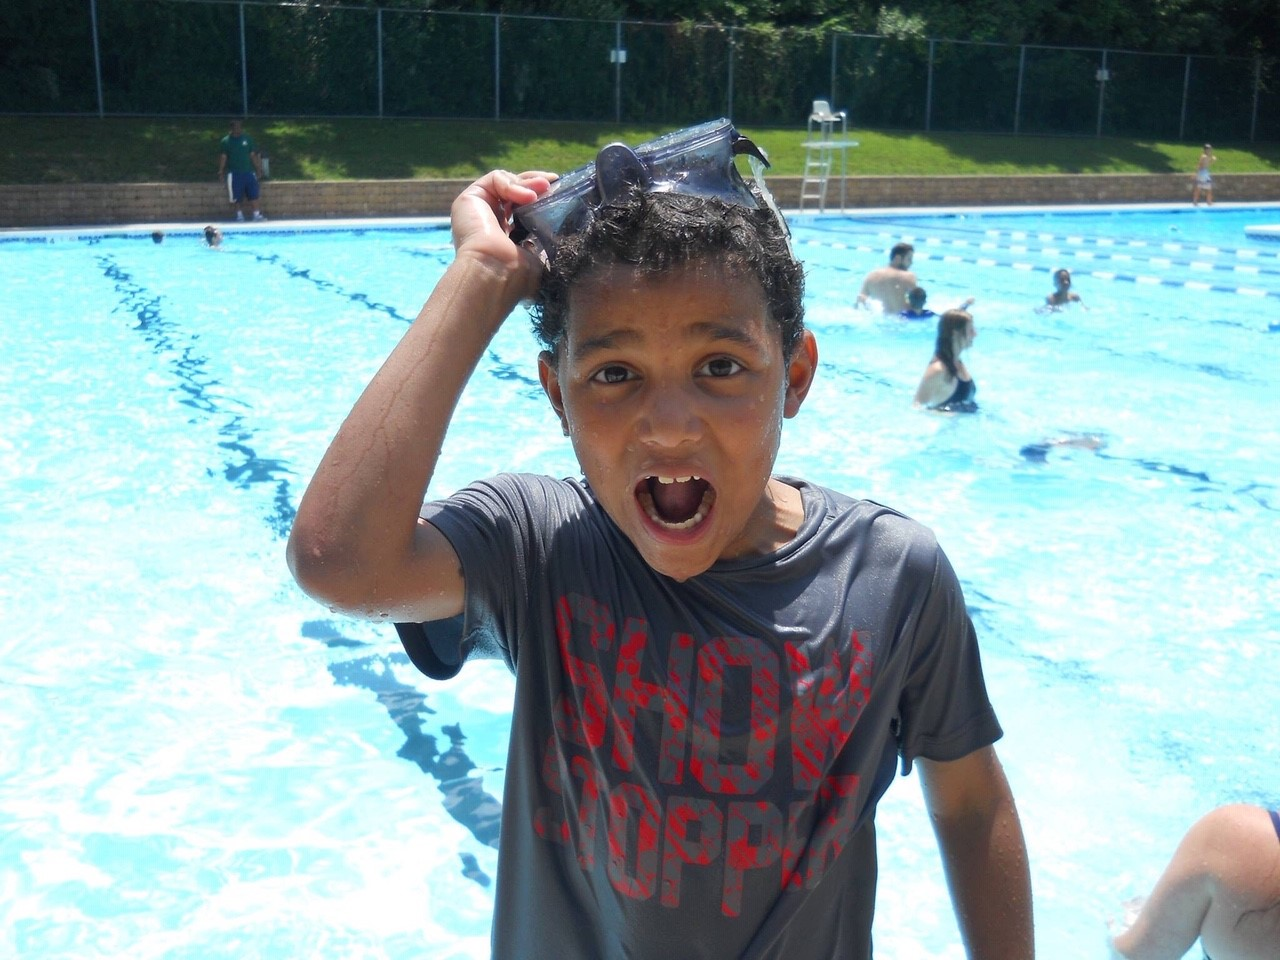 a young boy pulls the goggles off his head in front of a pool